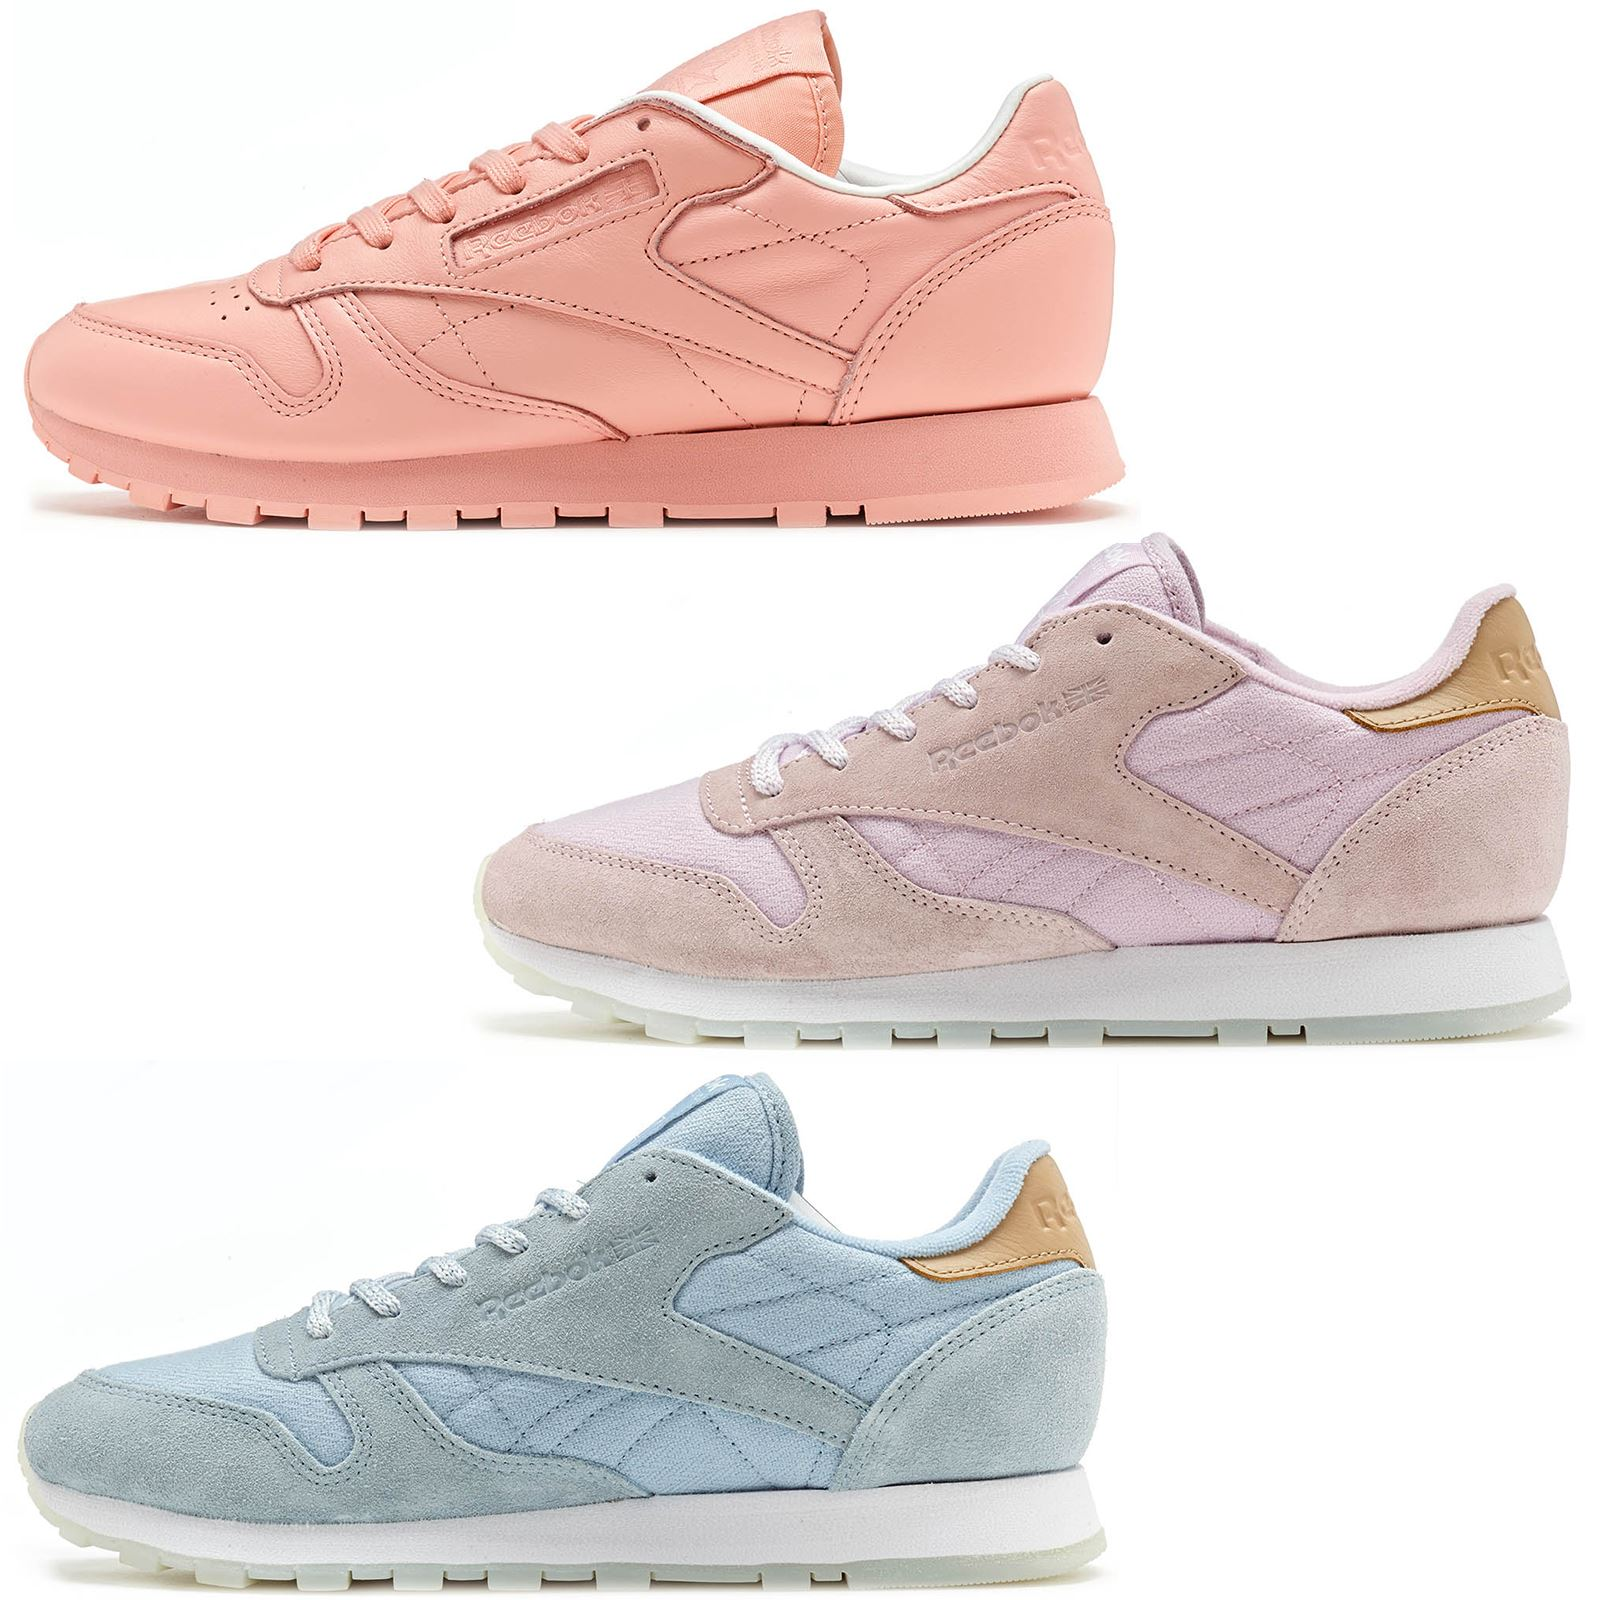 Details zu Reebok Classic Leather Sea Worn & Spirit Classic Suede Women Trainers All Sizes